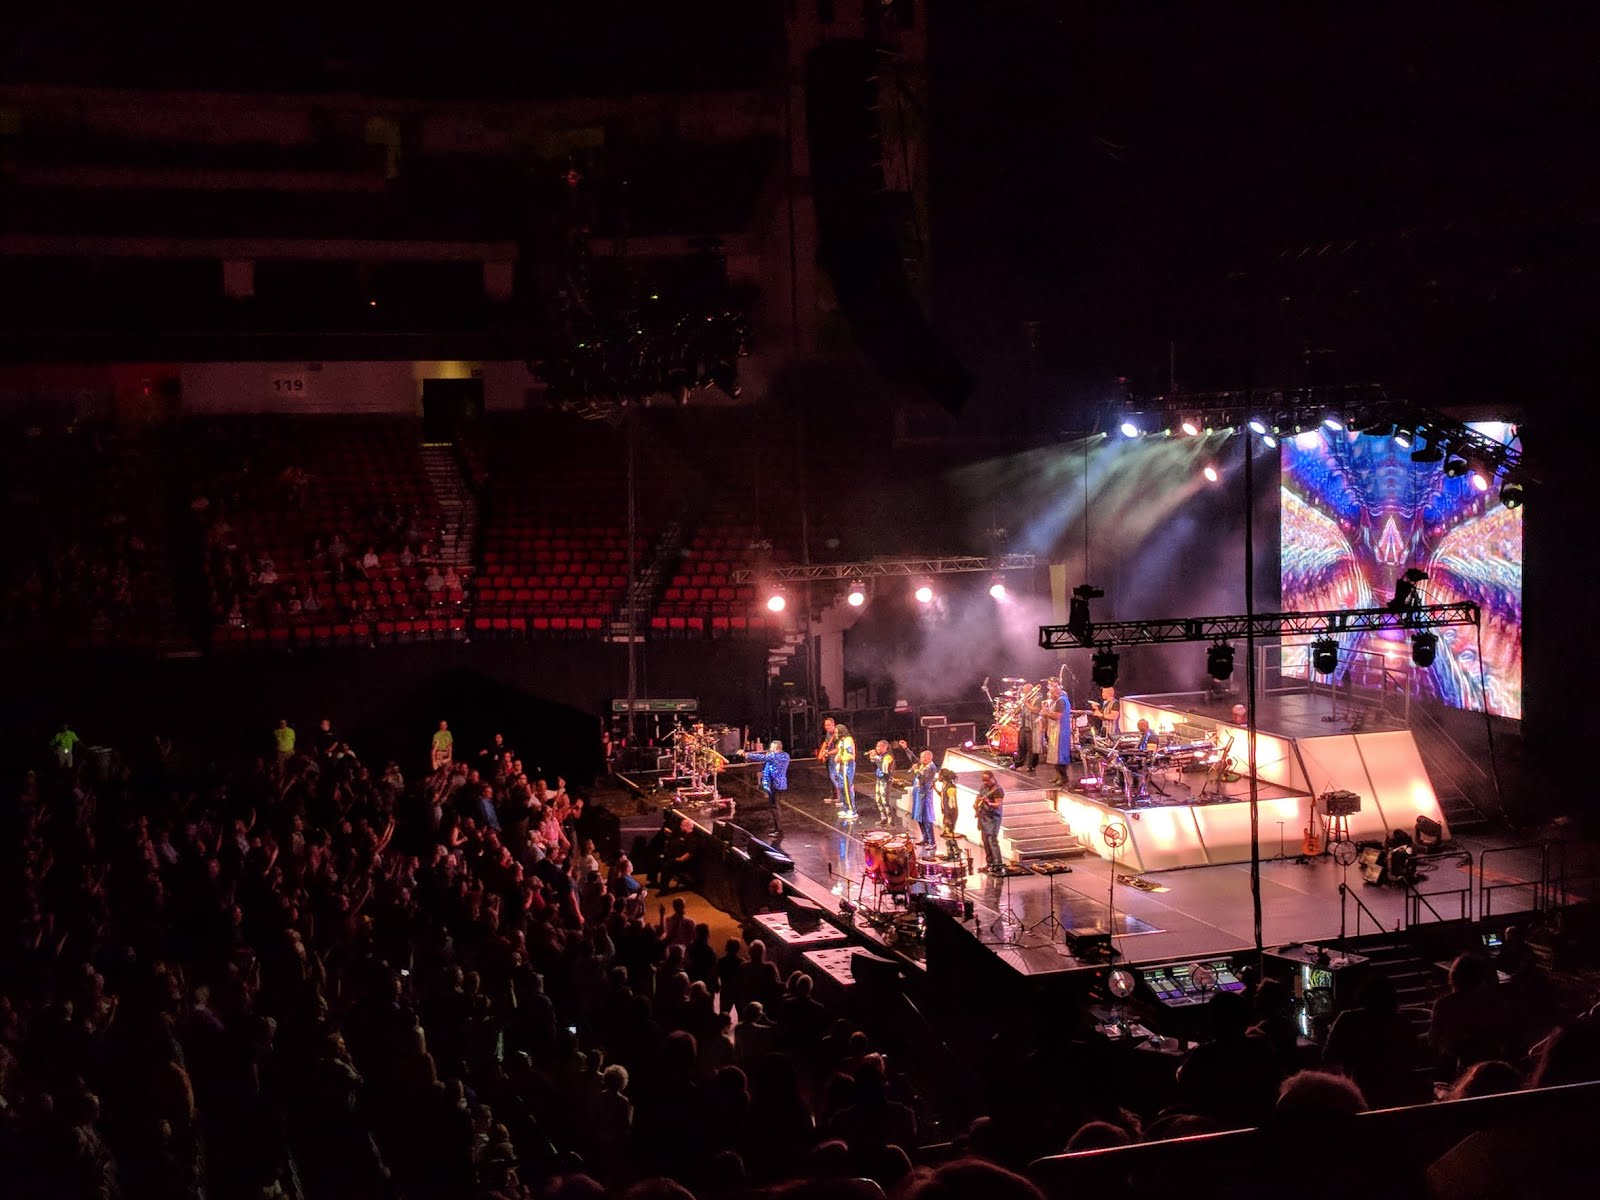 Earth Wind & Fire concert funk big band brass vocal guitar show